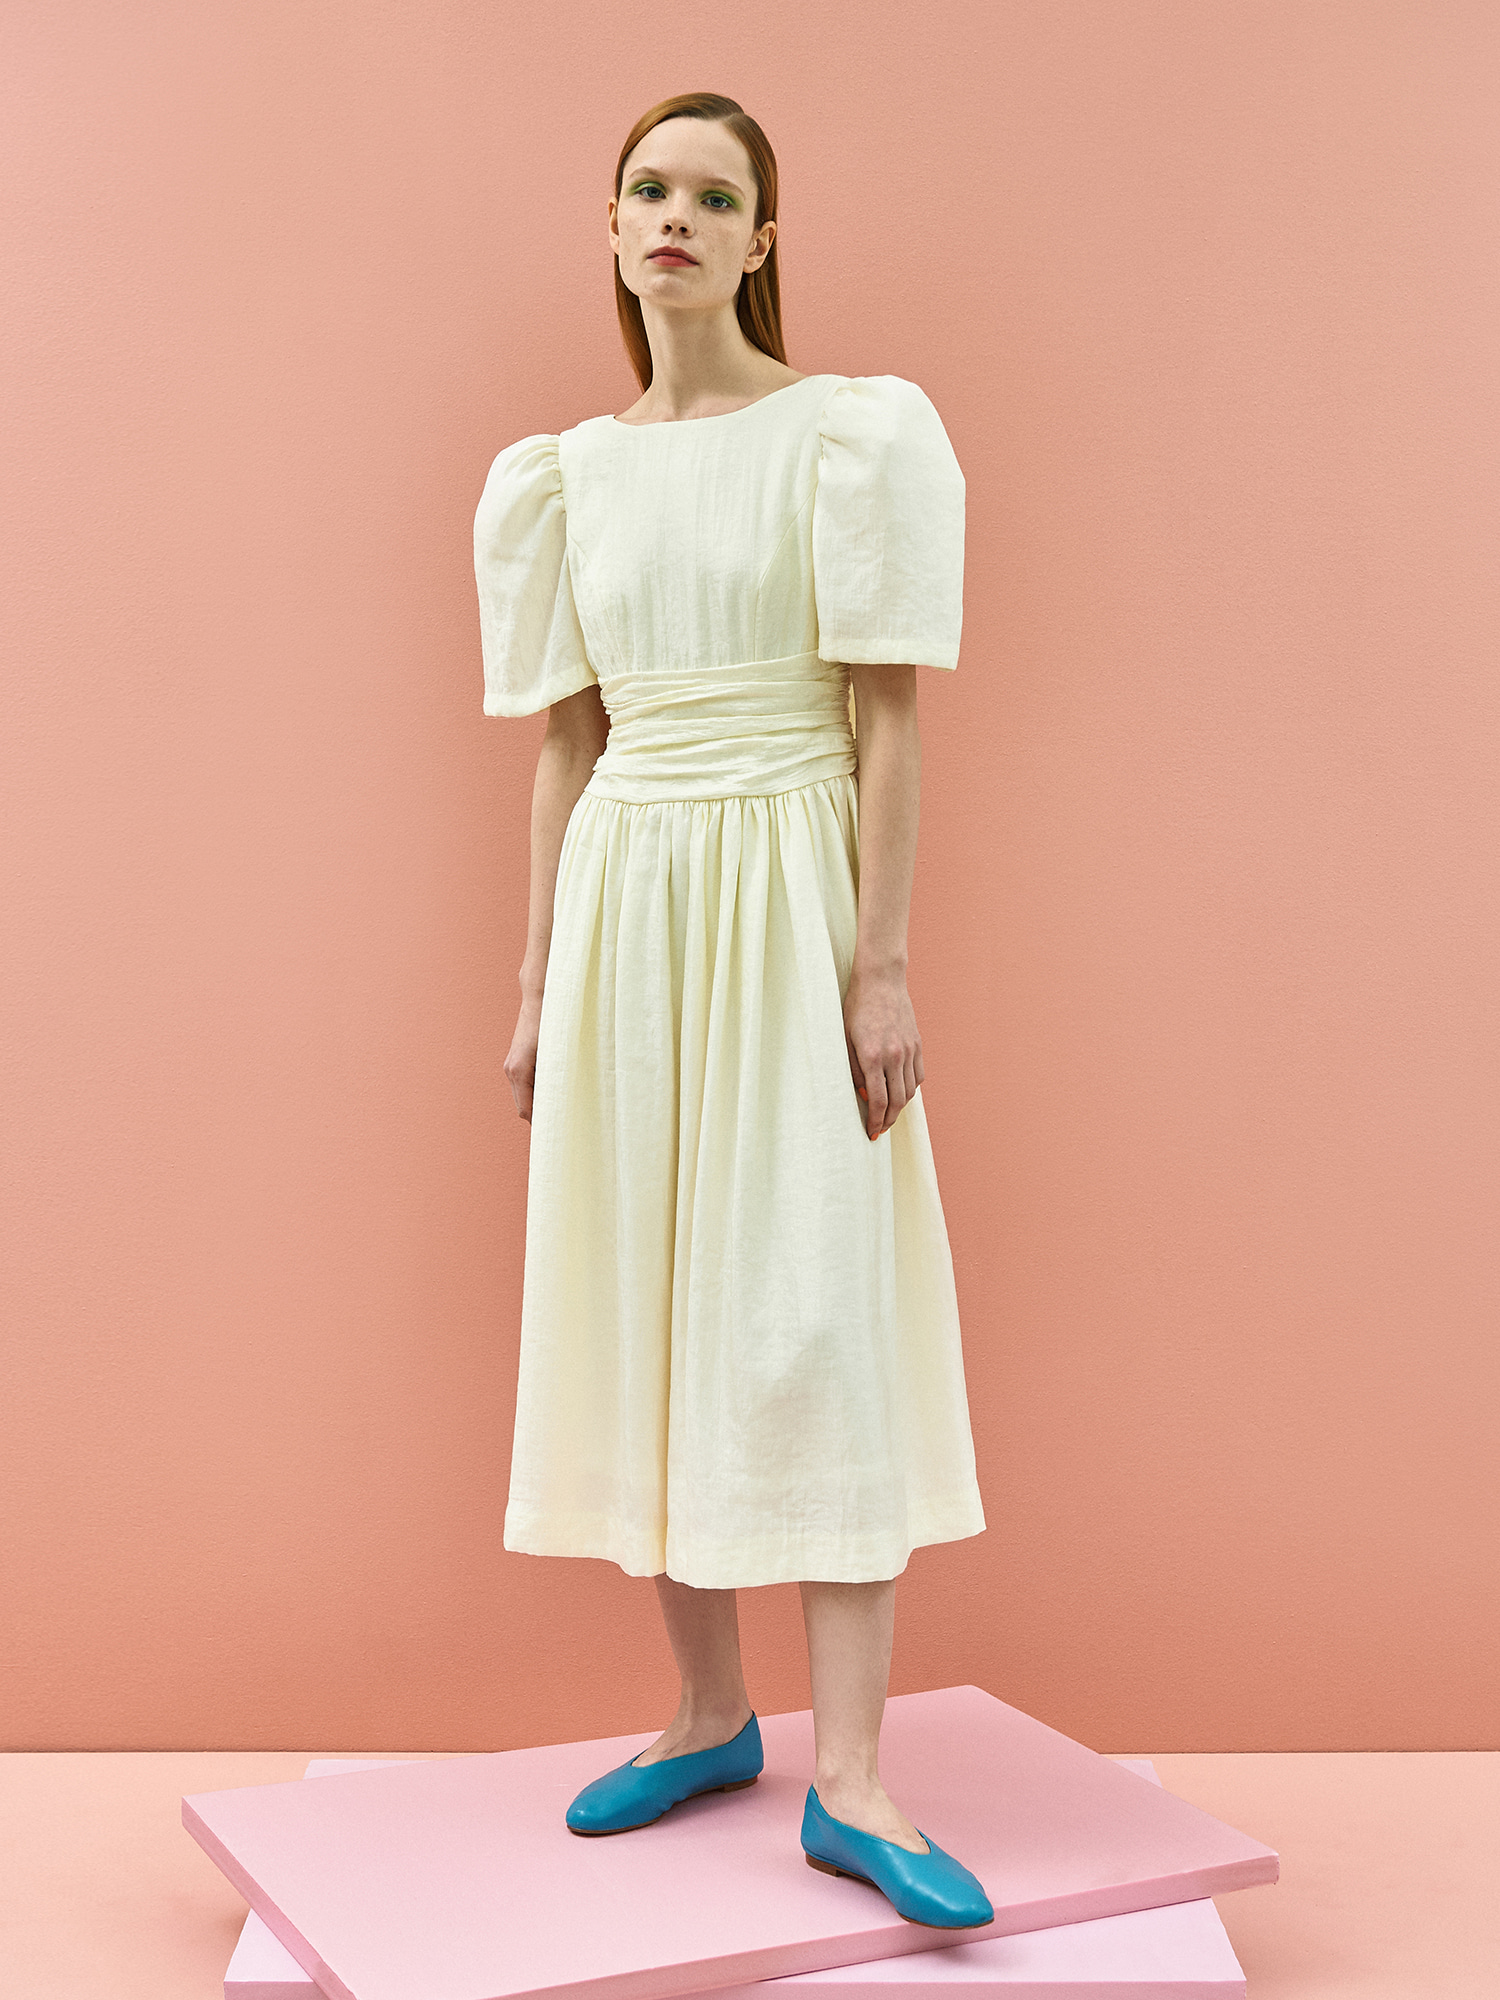 [미드세일 40%할인]Retro Ribbon Dress in Cream